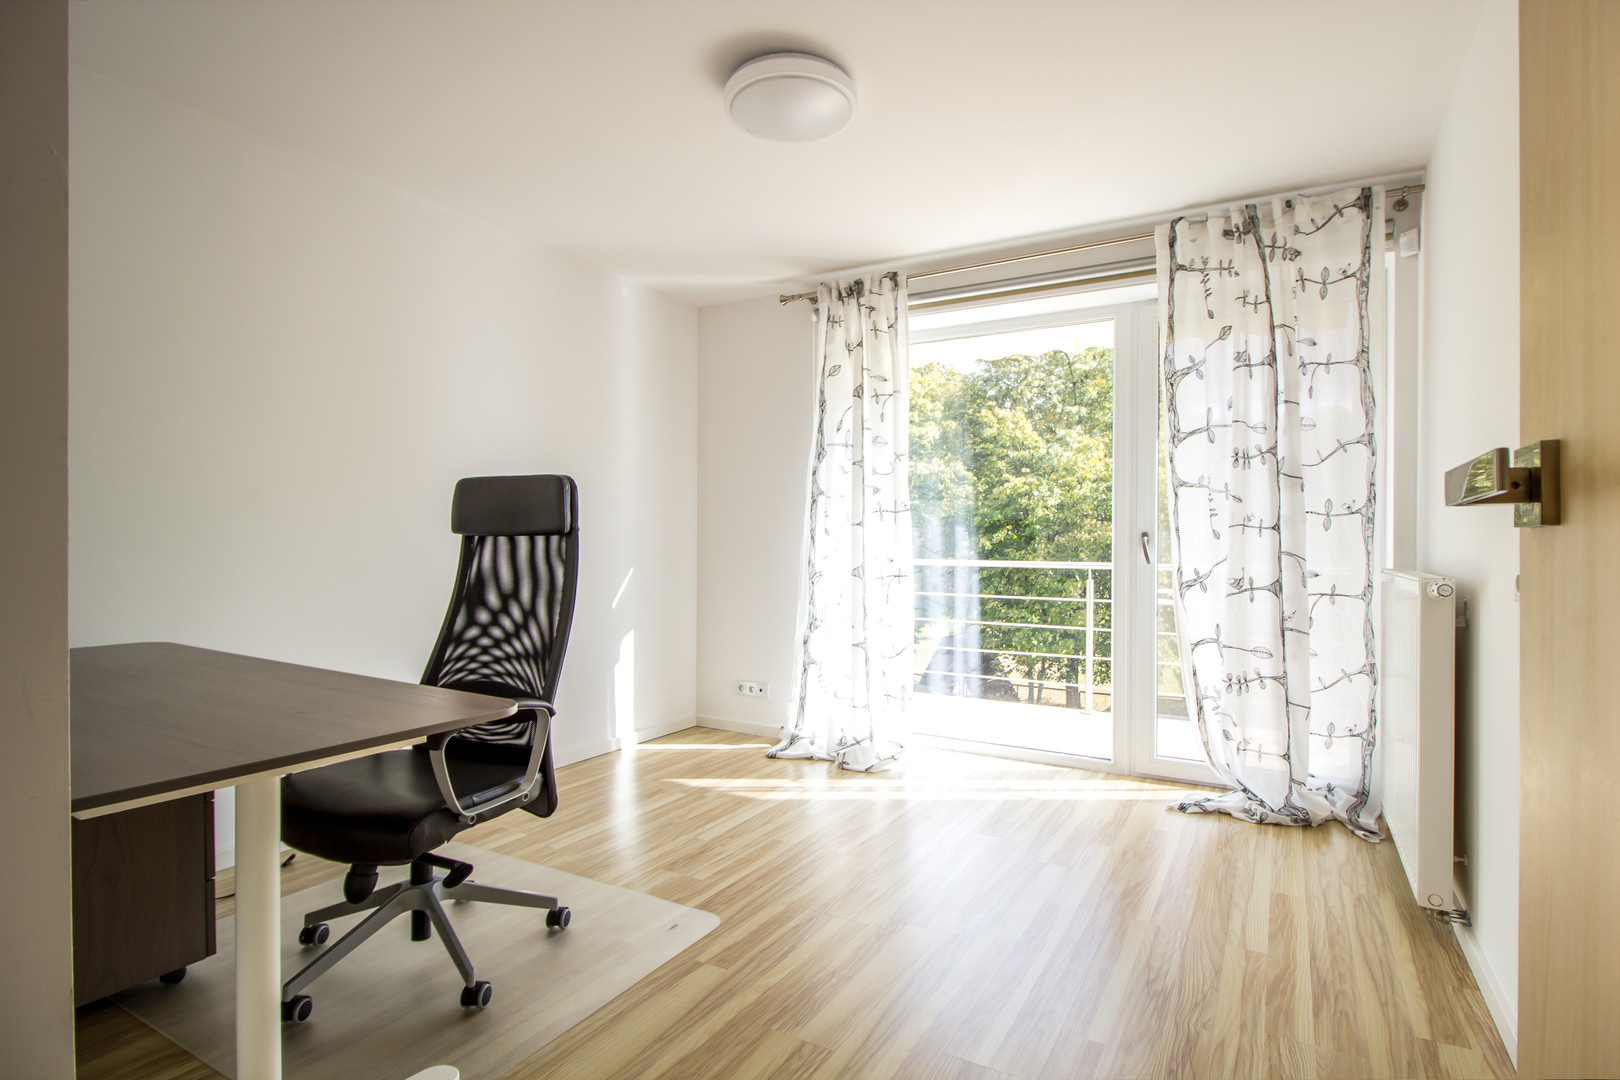 House for rent Poznan Poland (25 of 31).